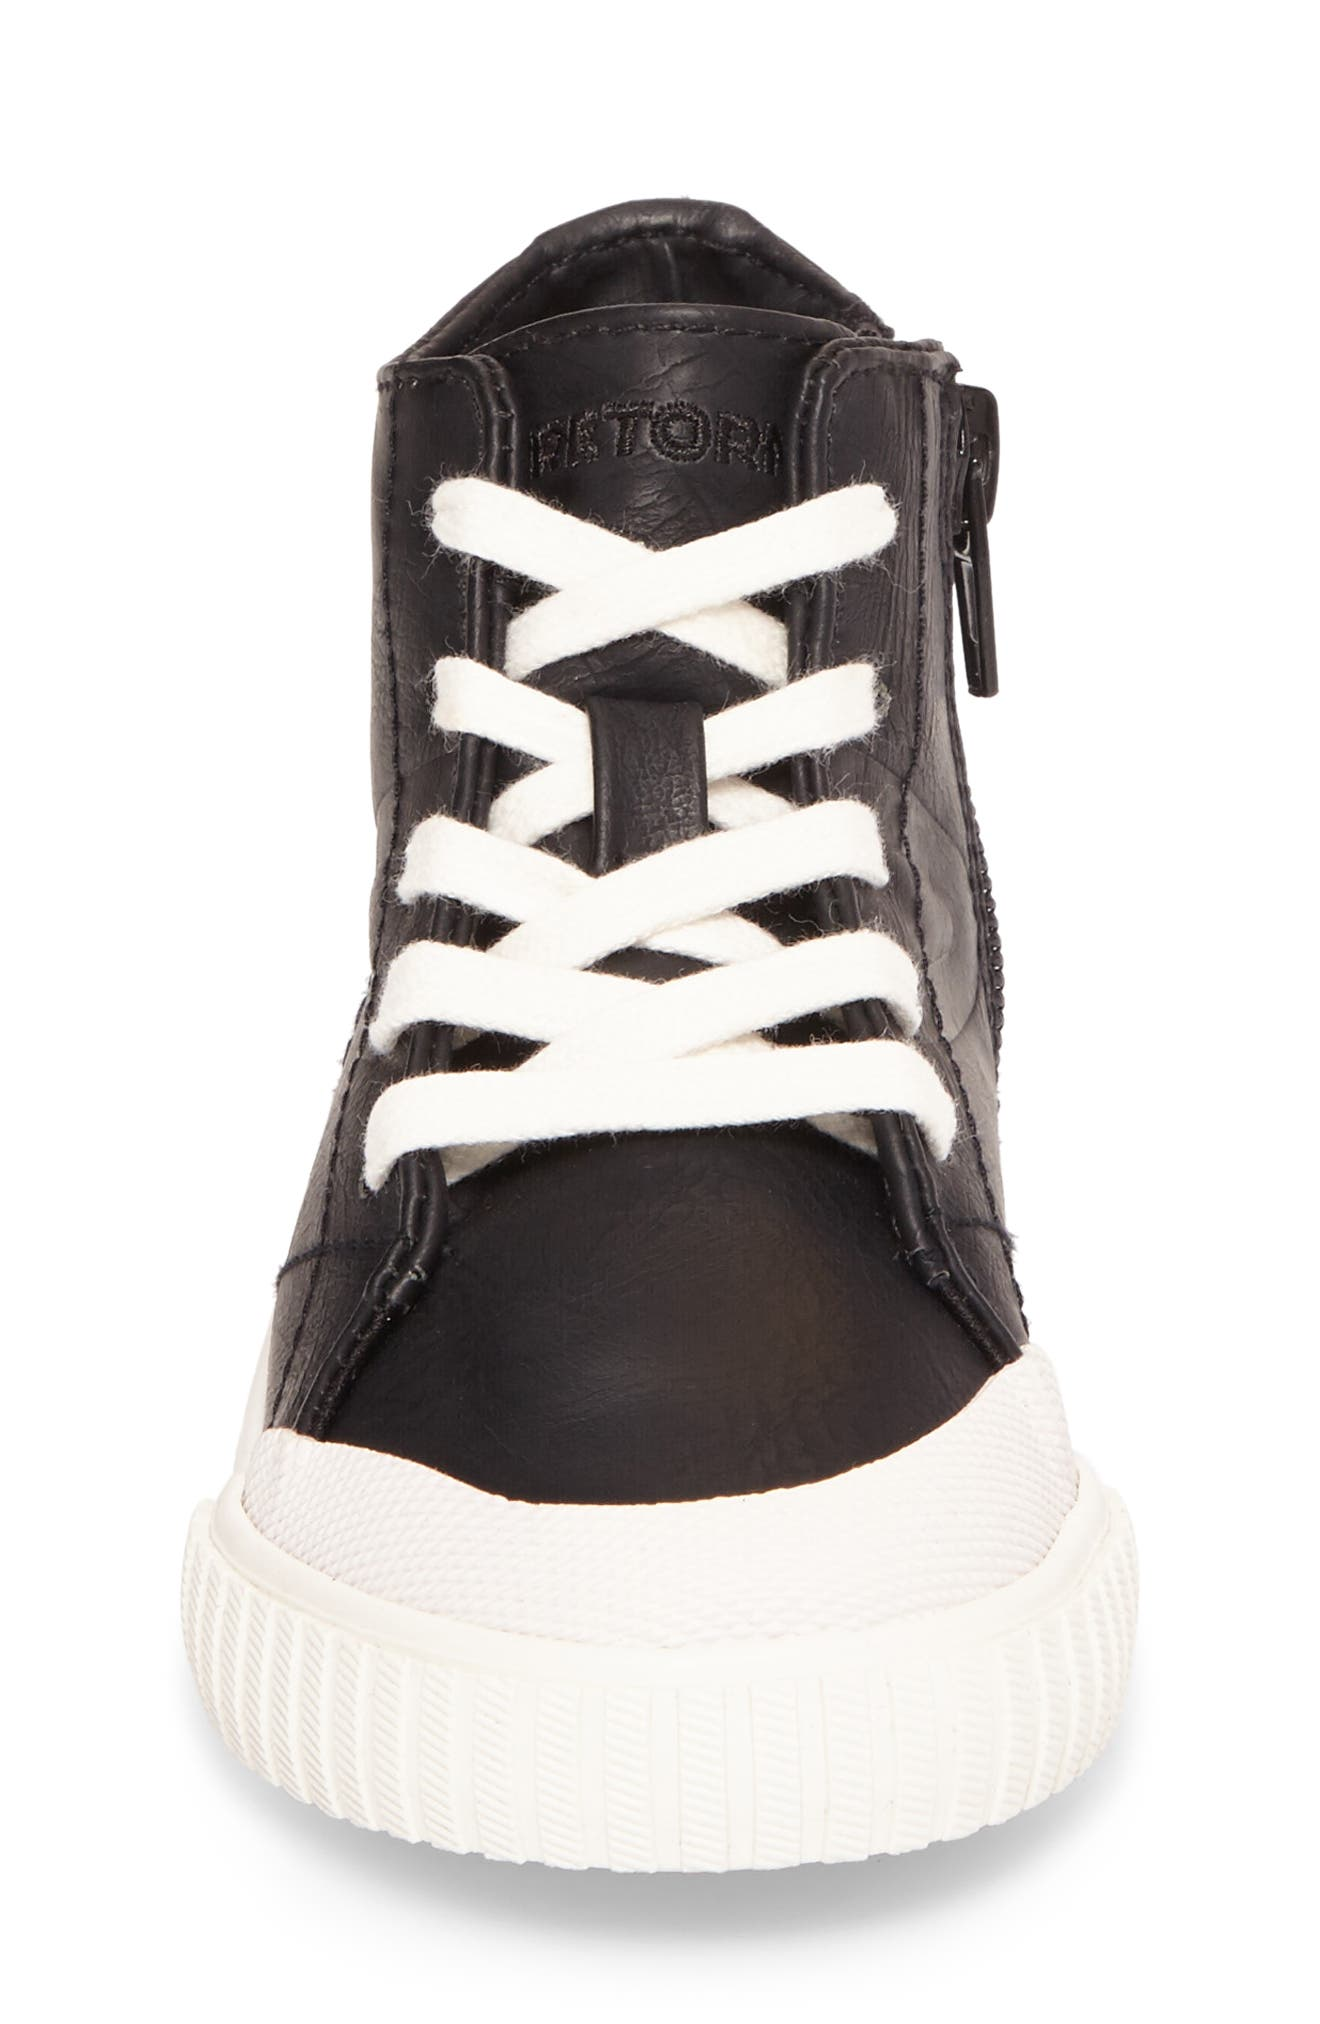 Marley High Top Sneaker,                             Alternate thumbnail 4, color,                             001